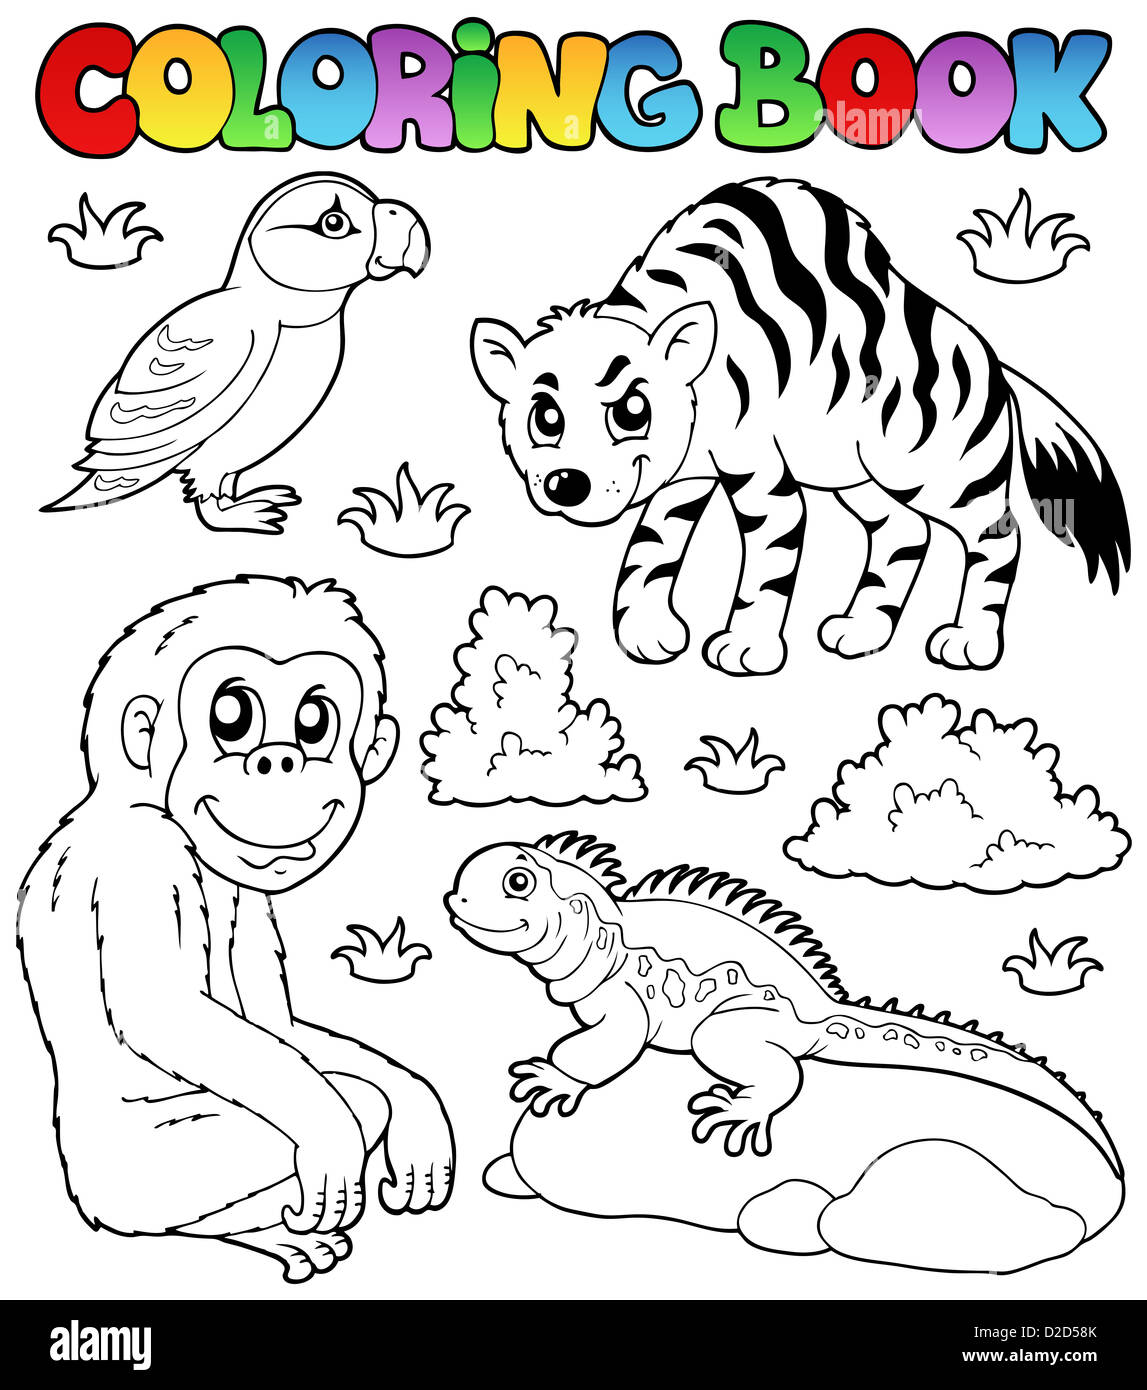 Coloring book zoo animals set 2 - picture illustration Stock Photo ...